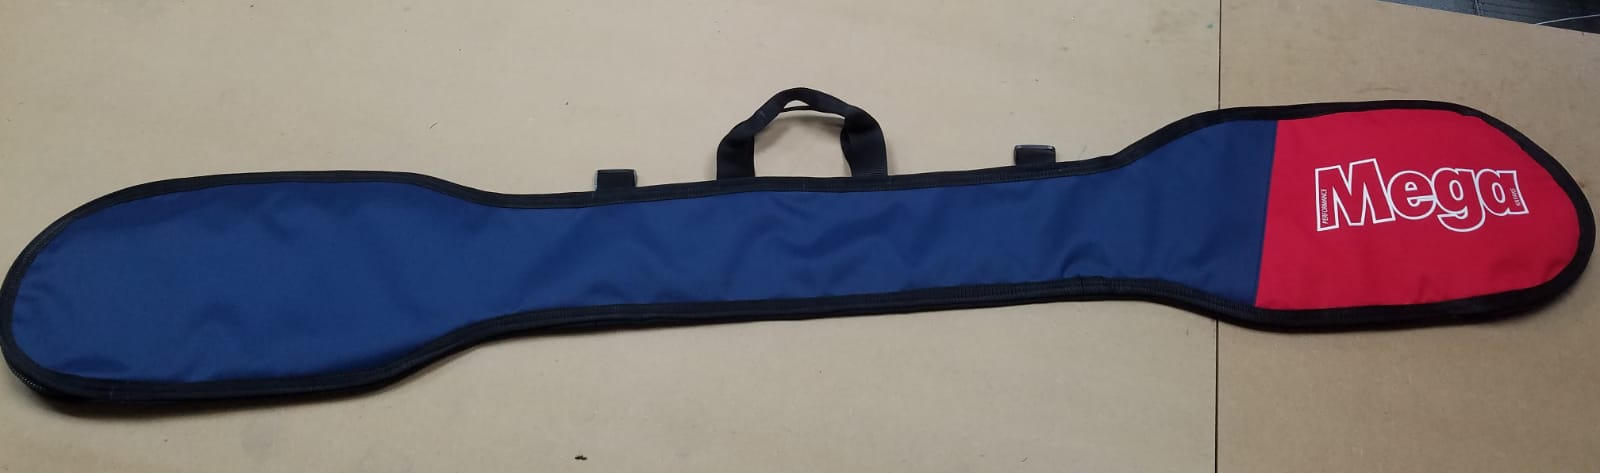 200cm kayak paddle bag